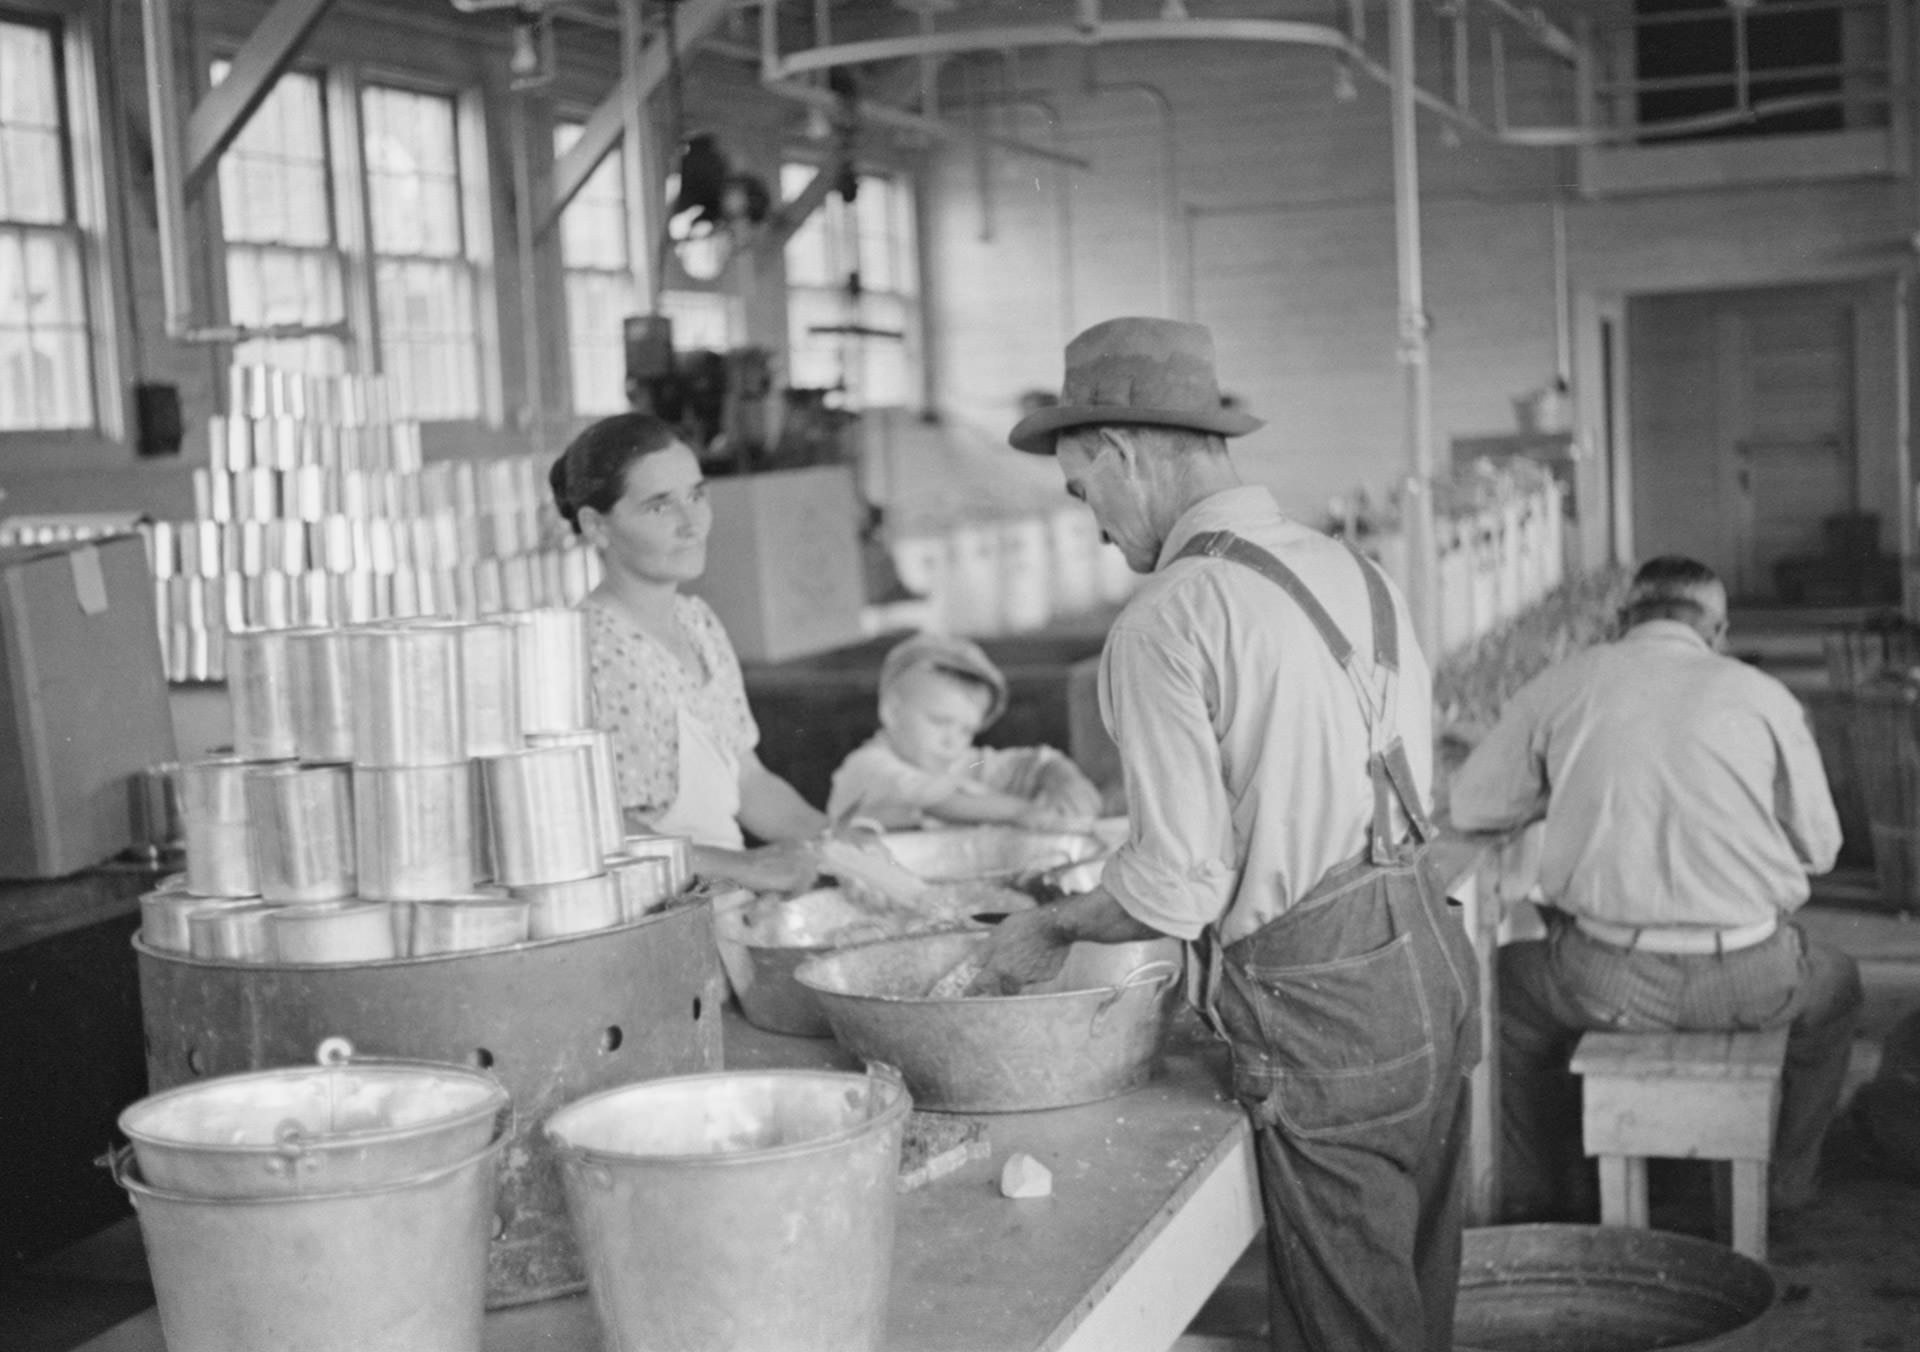 Dyess residents assist each other in a community canning workshop, photographed by Ben Shahn.